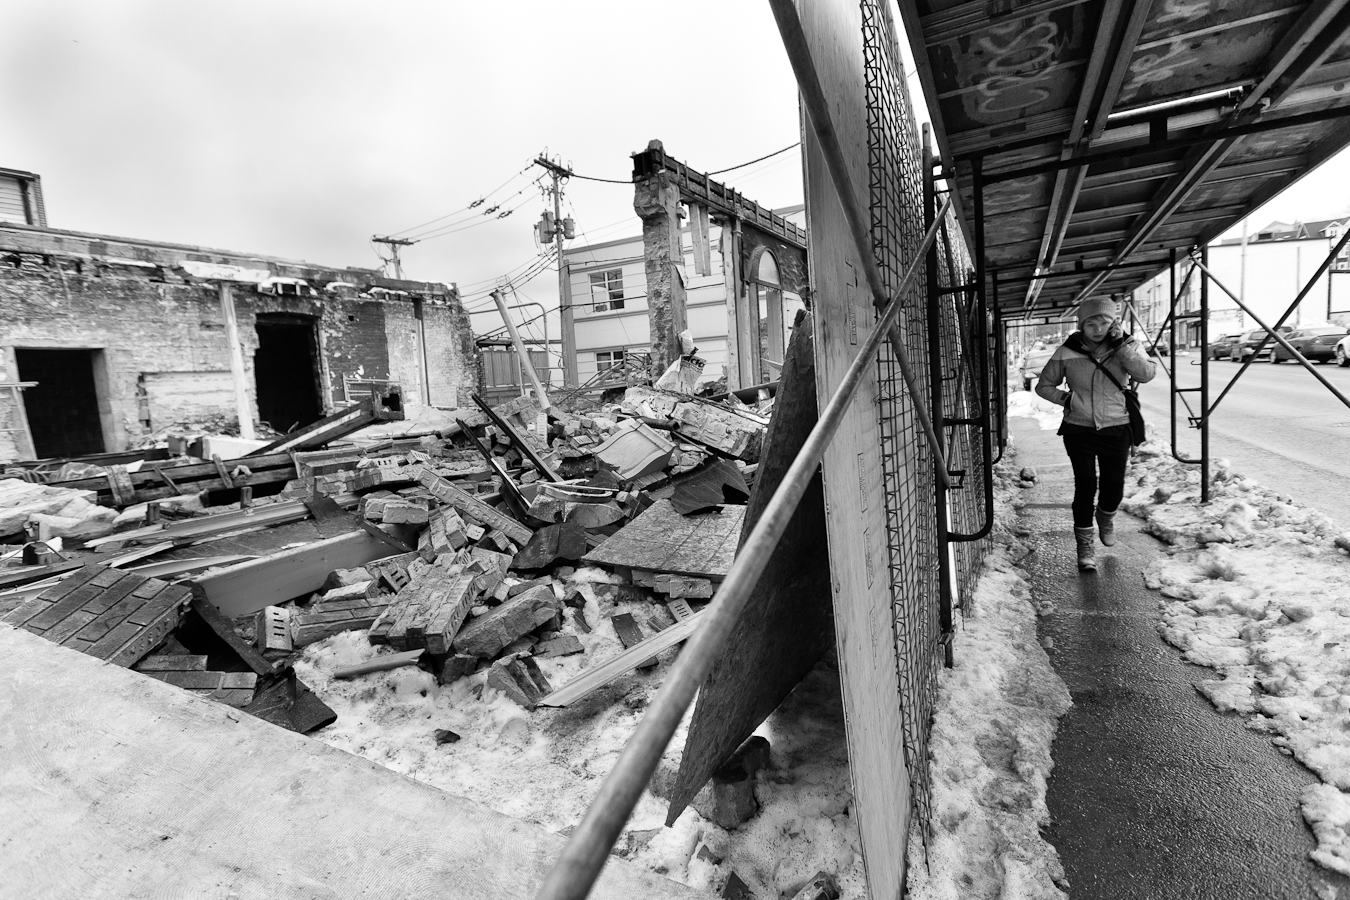 Rubble II shot by D. EDWARDS for A City Like Ours